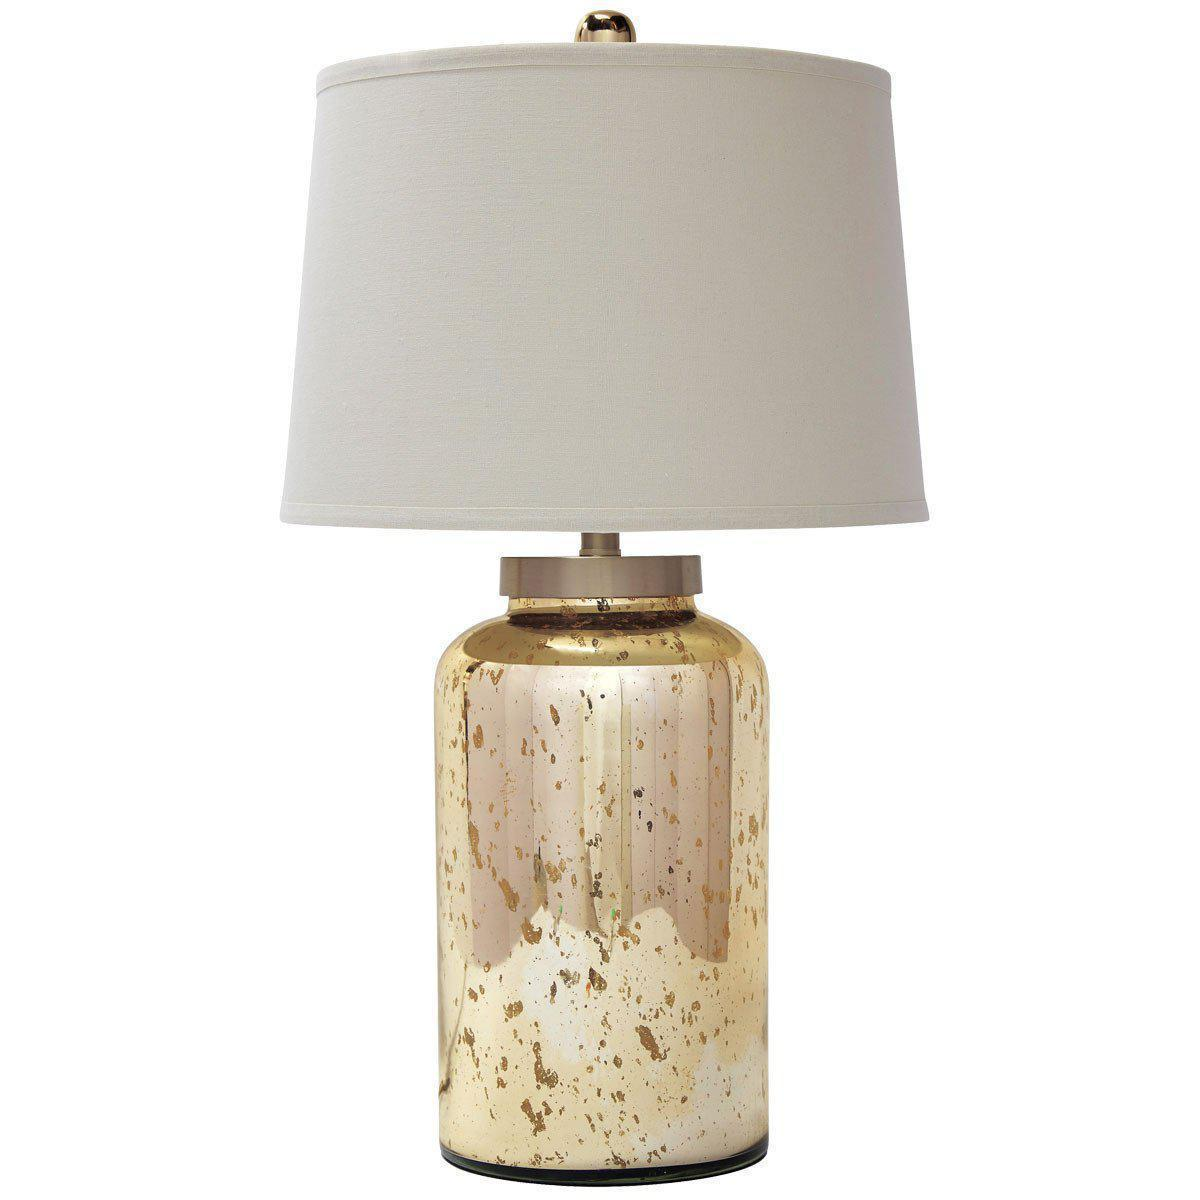 Shannin Table Lamp